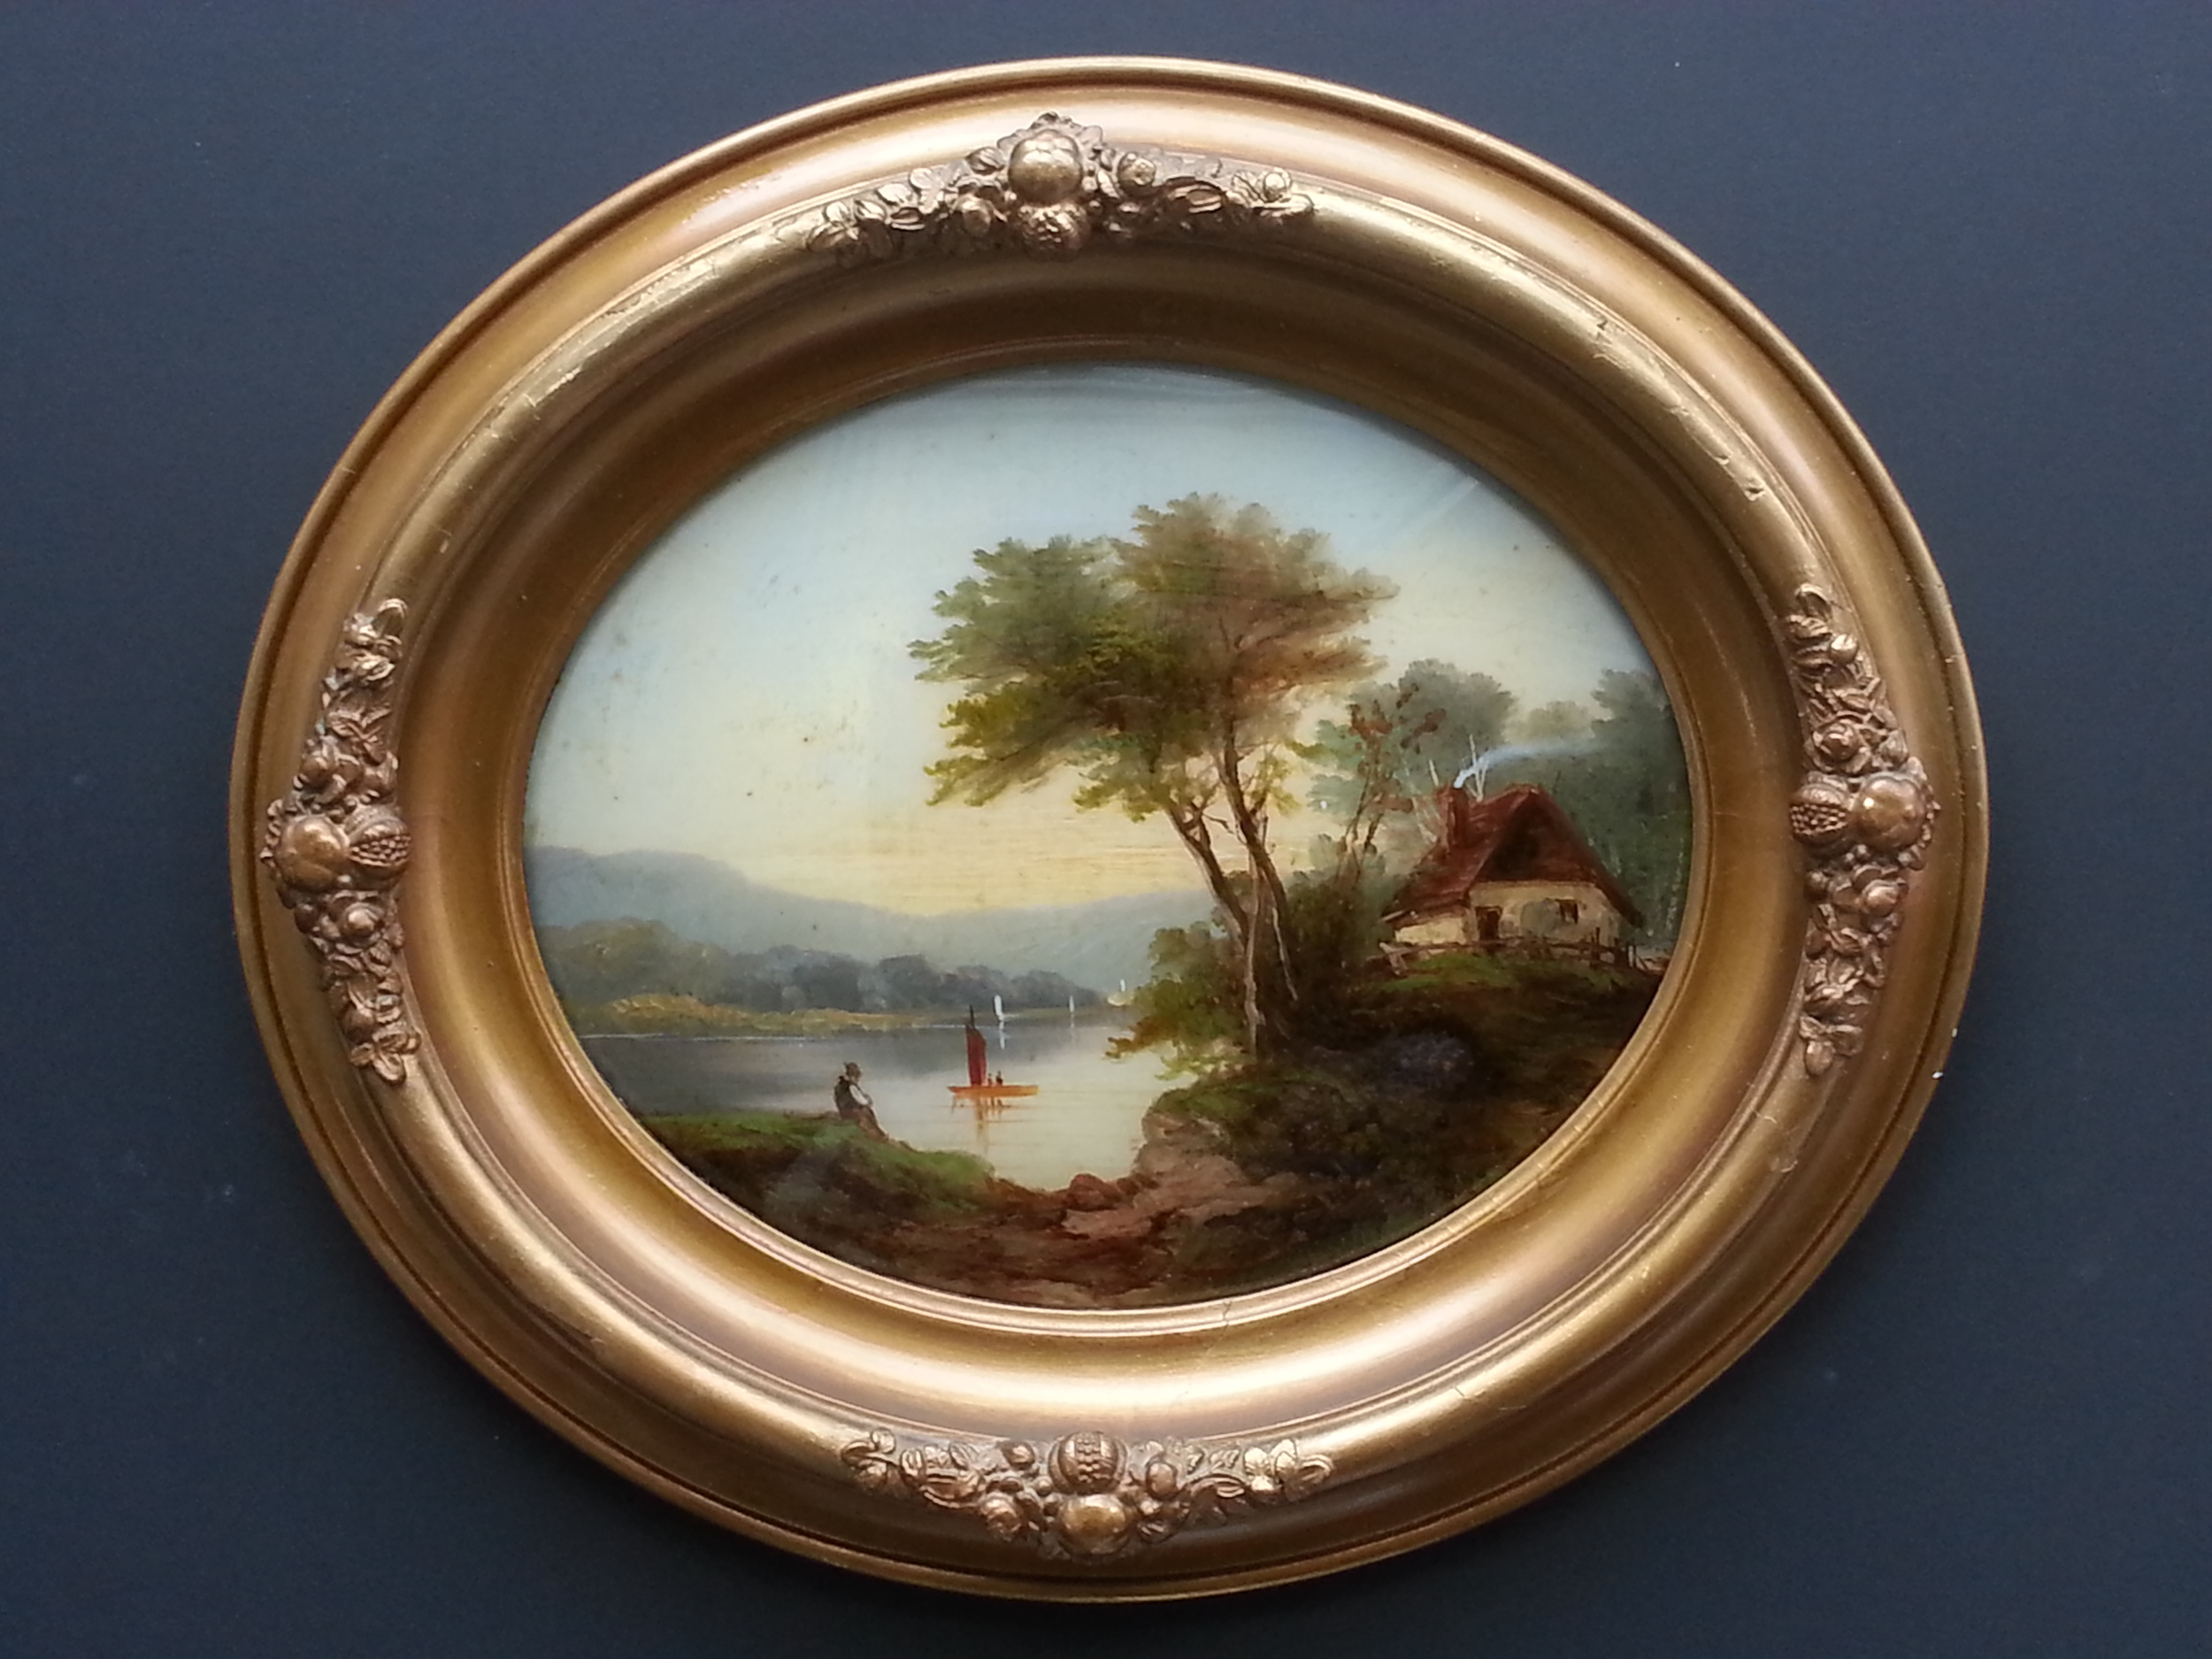 "Lakeside Respite    Oil on Glass, Signed on Verso "" J. F. Cropsey""  11"" x 16"" / 15 1/2"" x 20 1/2"" Framed ( Original Period Frame )    Price Available Upon Request"